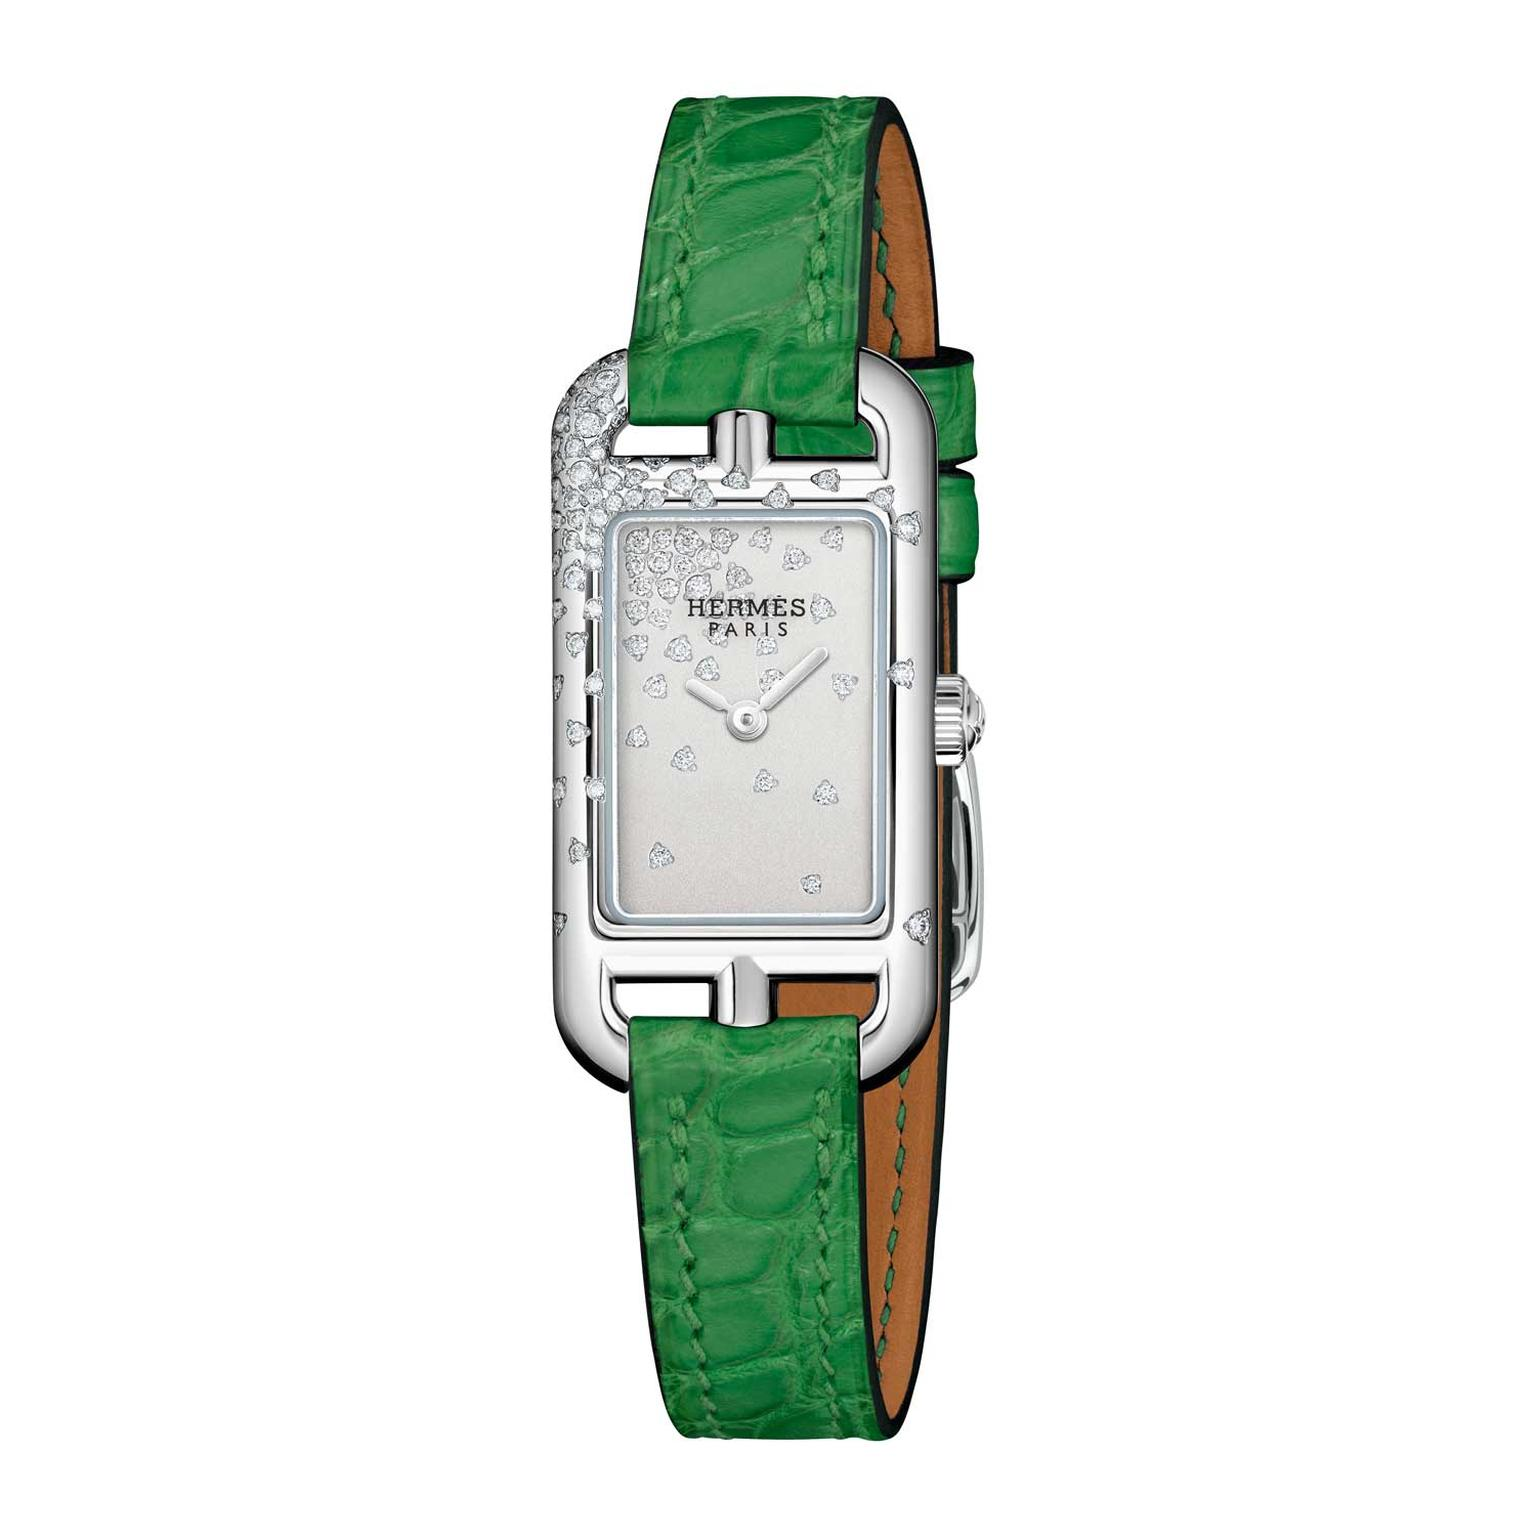 Hermes Nantucket Jete de diamants watch green strap